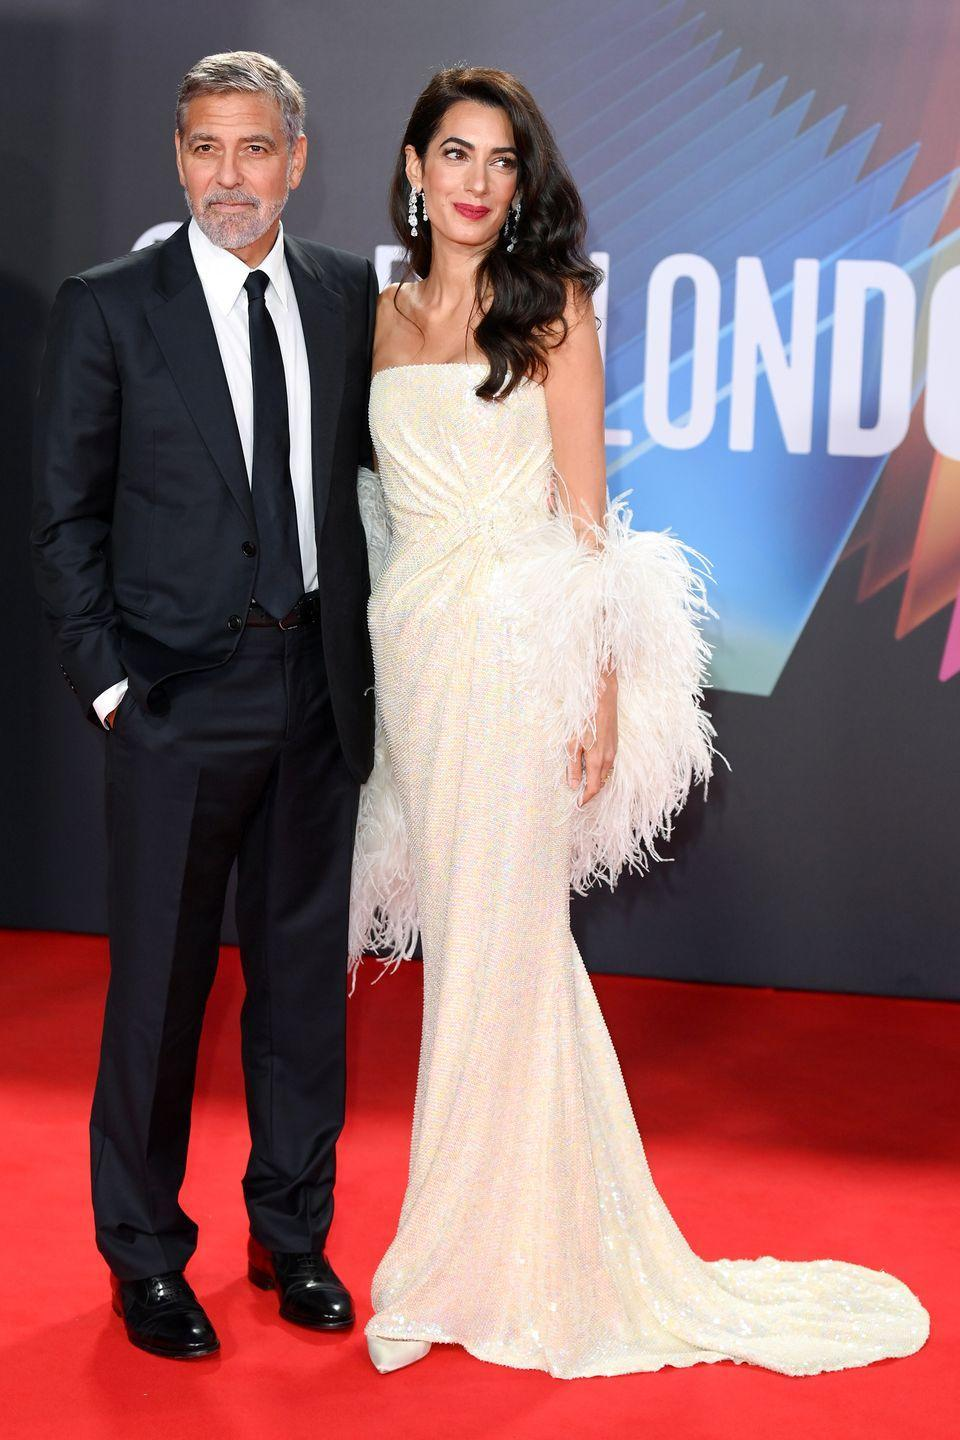 <p><strong>10 October</strong></p><p> George Clooney and Amal Clooney, who dressed in custom 16Arlington, walked the red carpet for The Tender Bar premiere.<br></p>